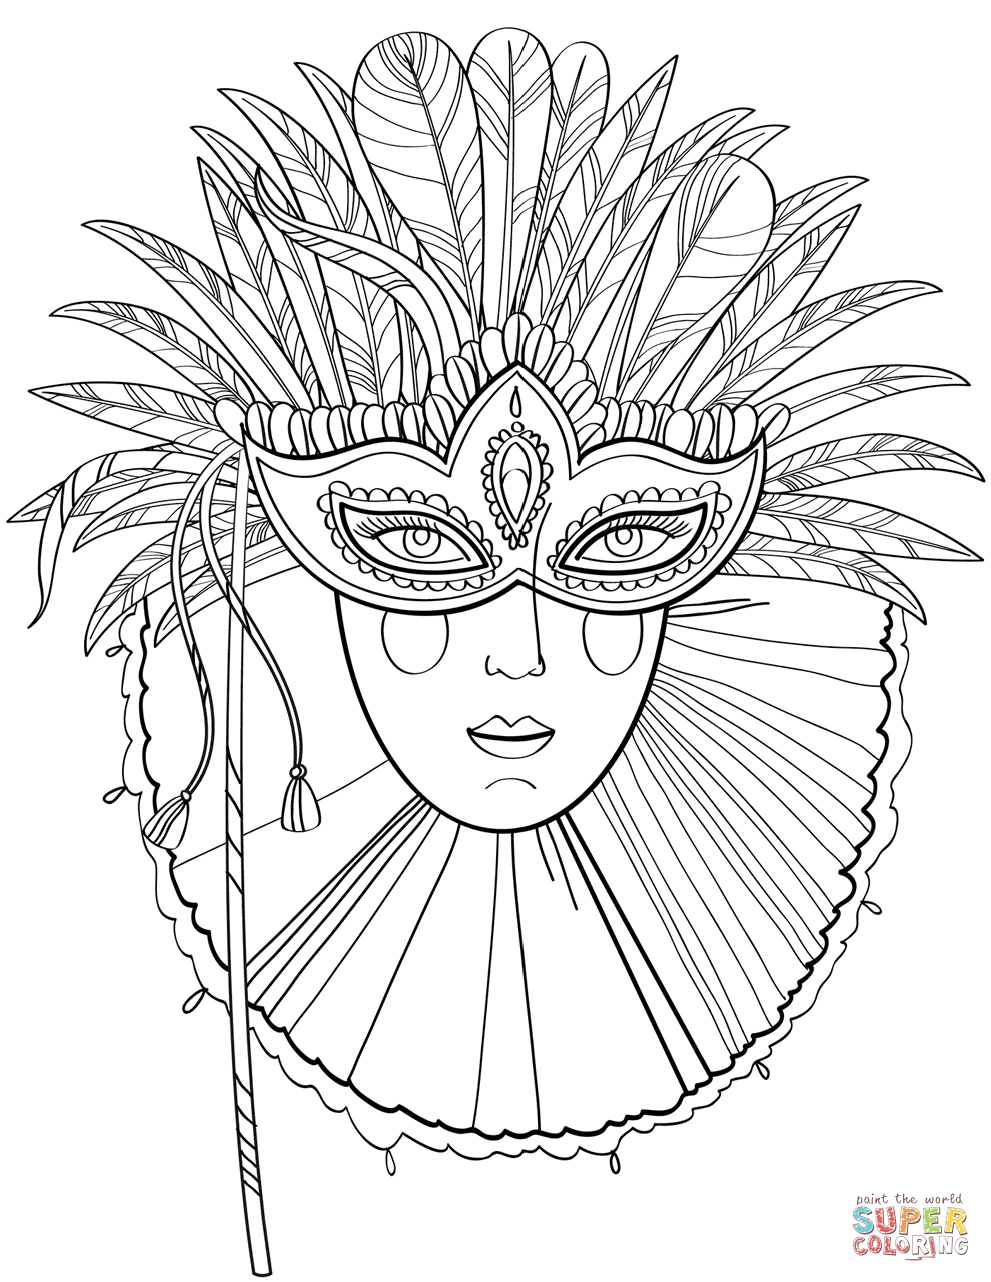 Mardi Gras Coloring Pages | Free Printable Pictures - Mardi Gras Coloring Pages Free Printable